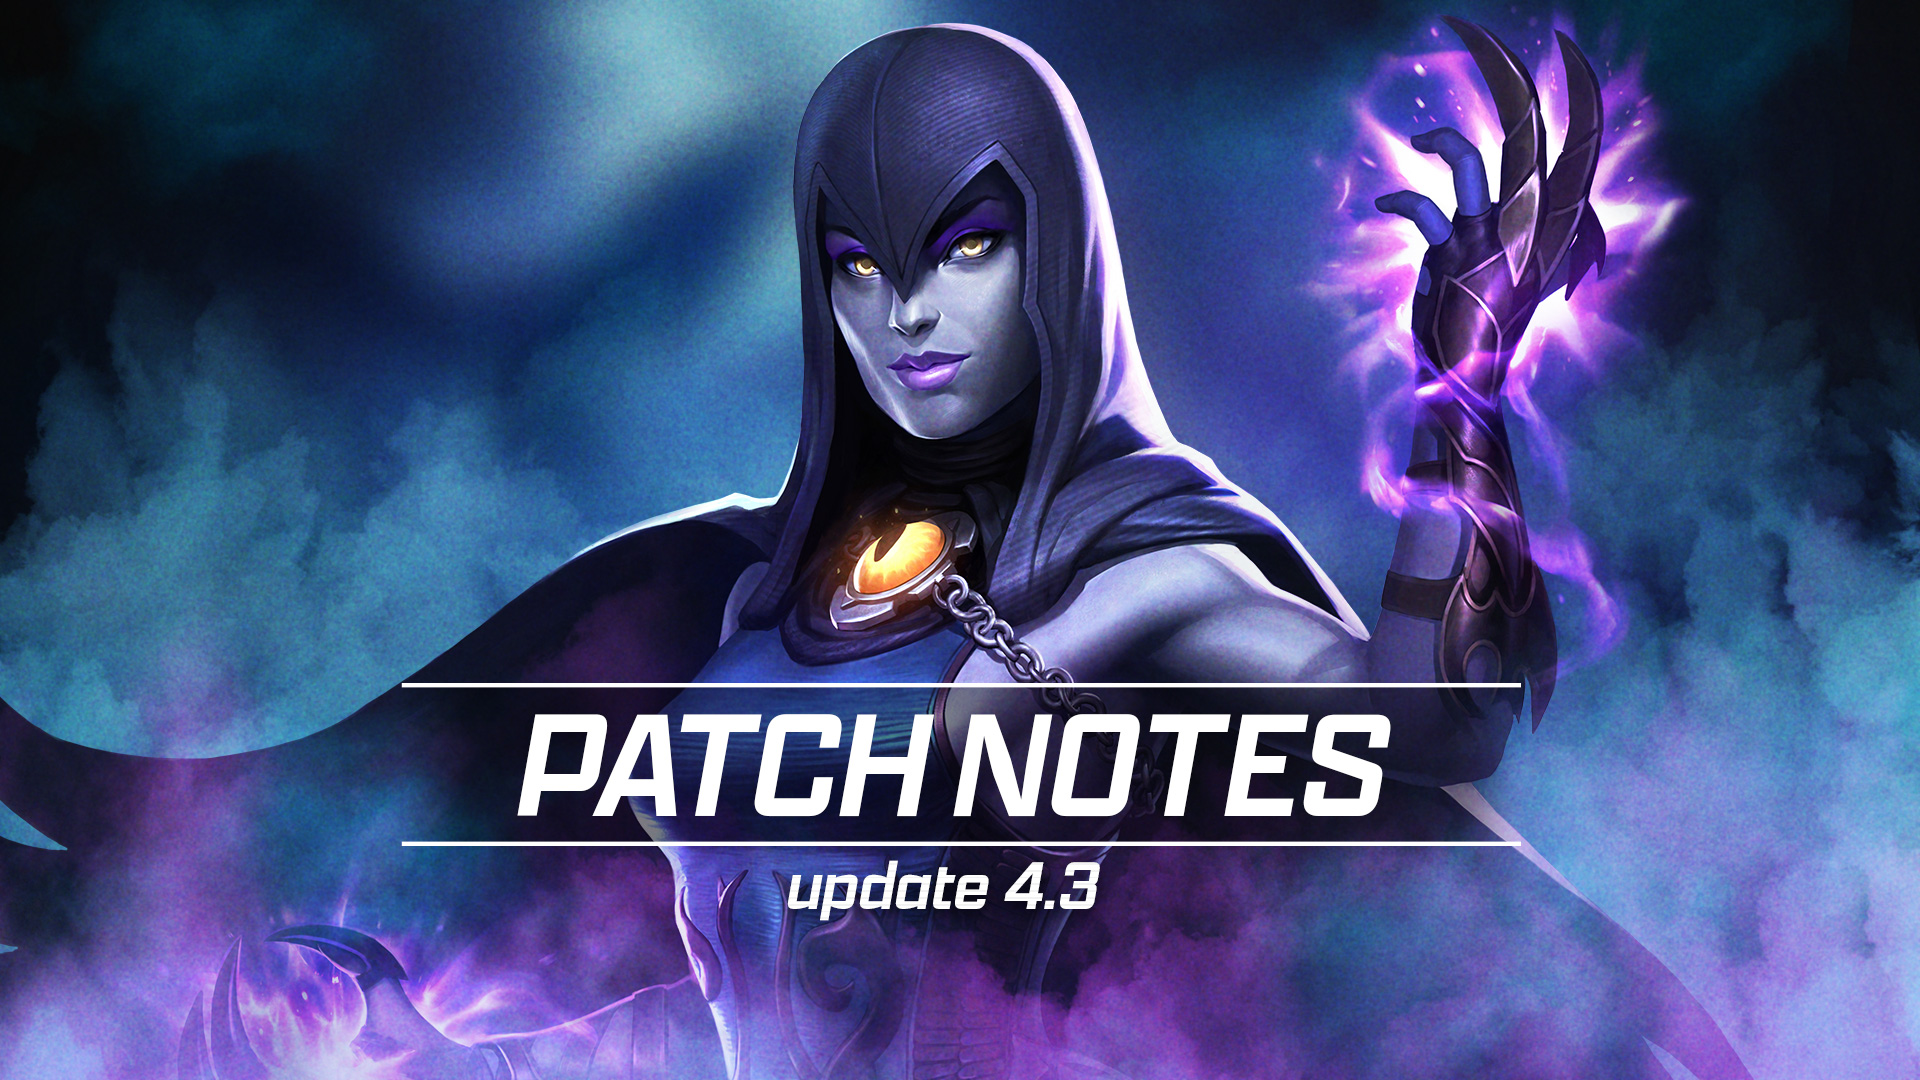 PATCH_NOTES_43_RAVEN.jpg